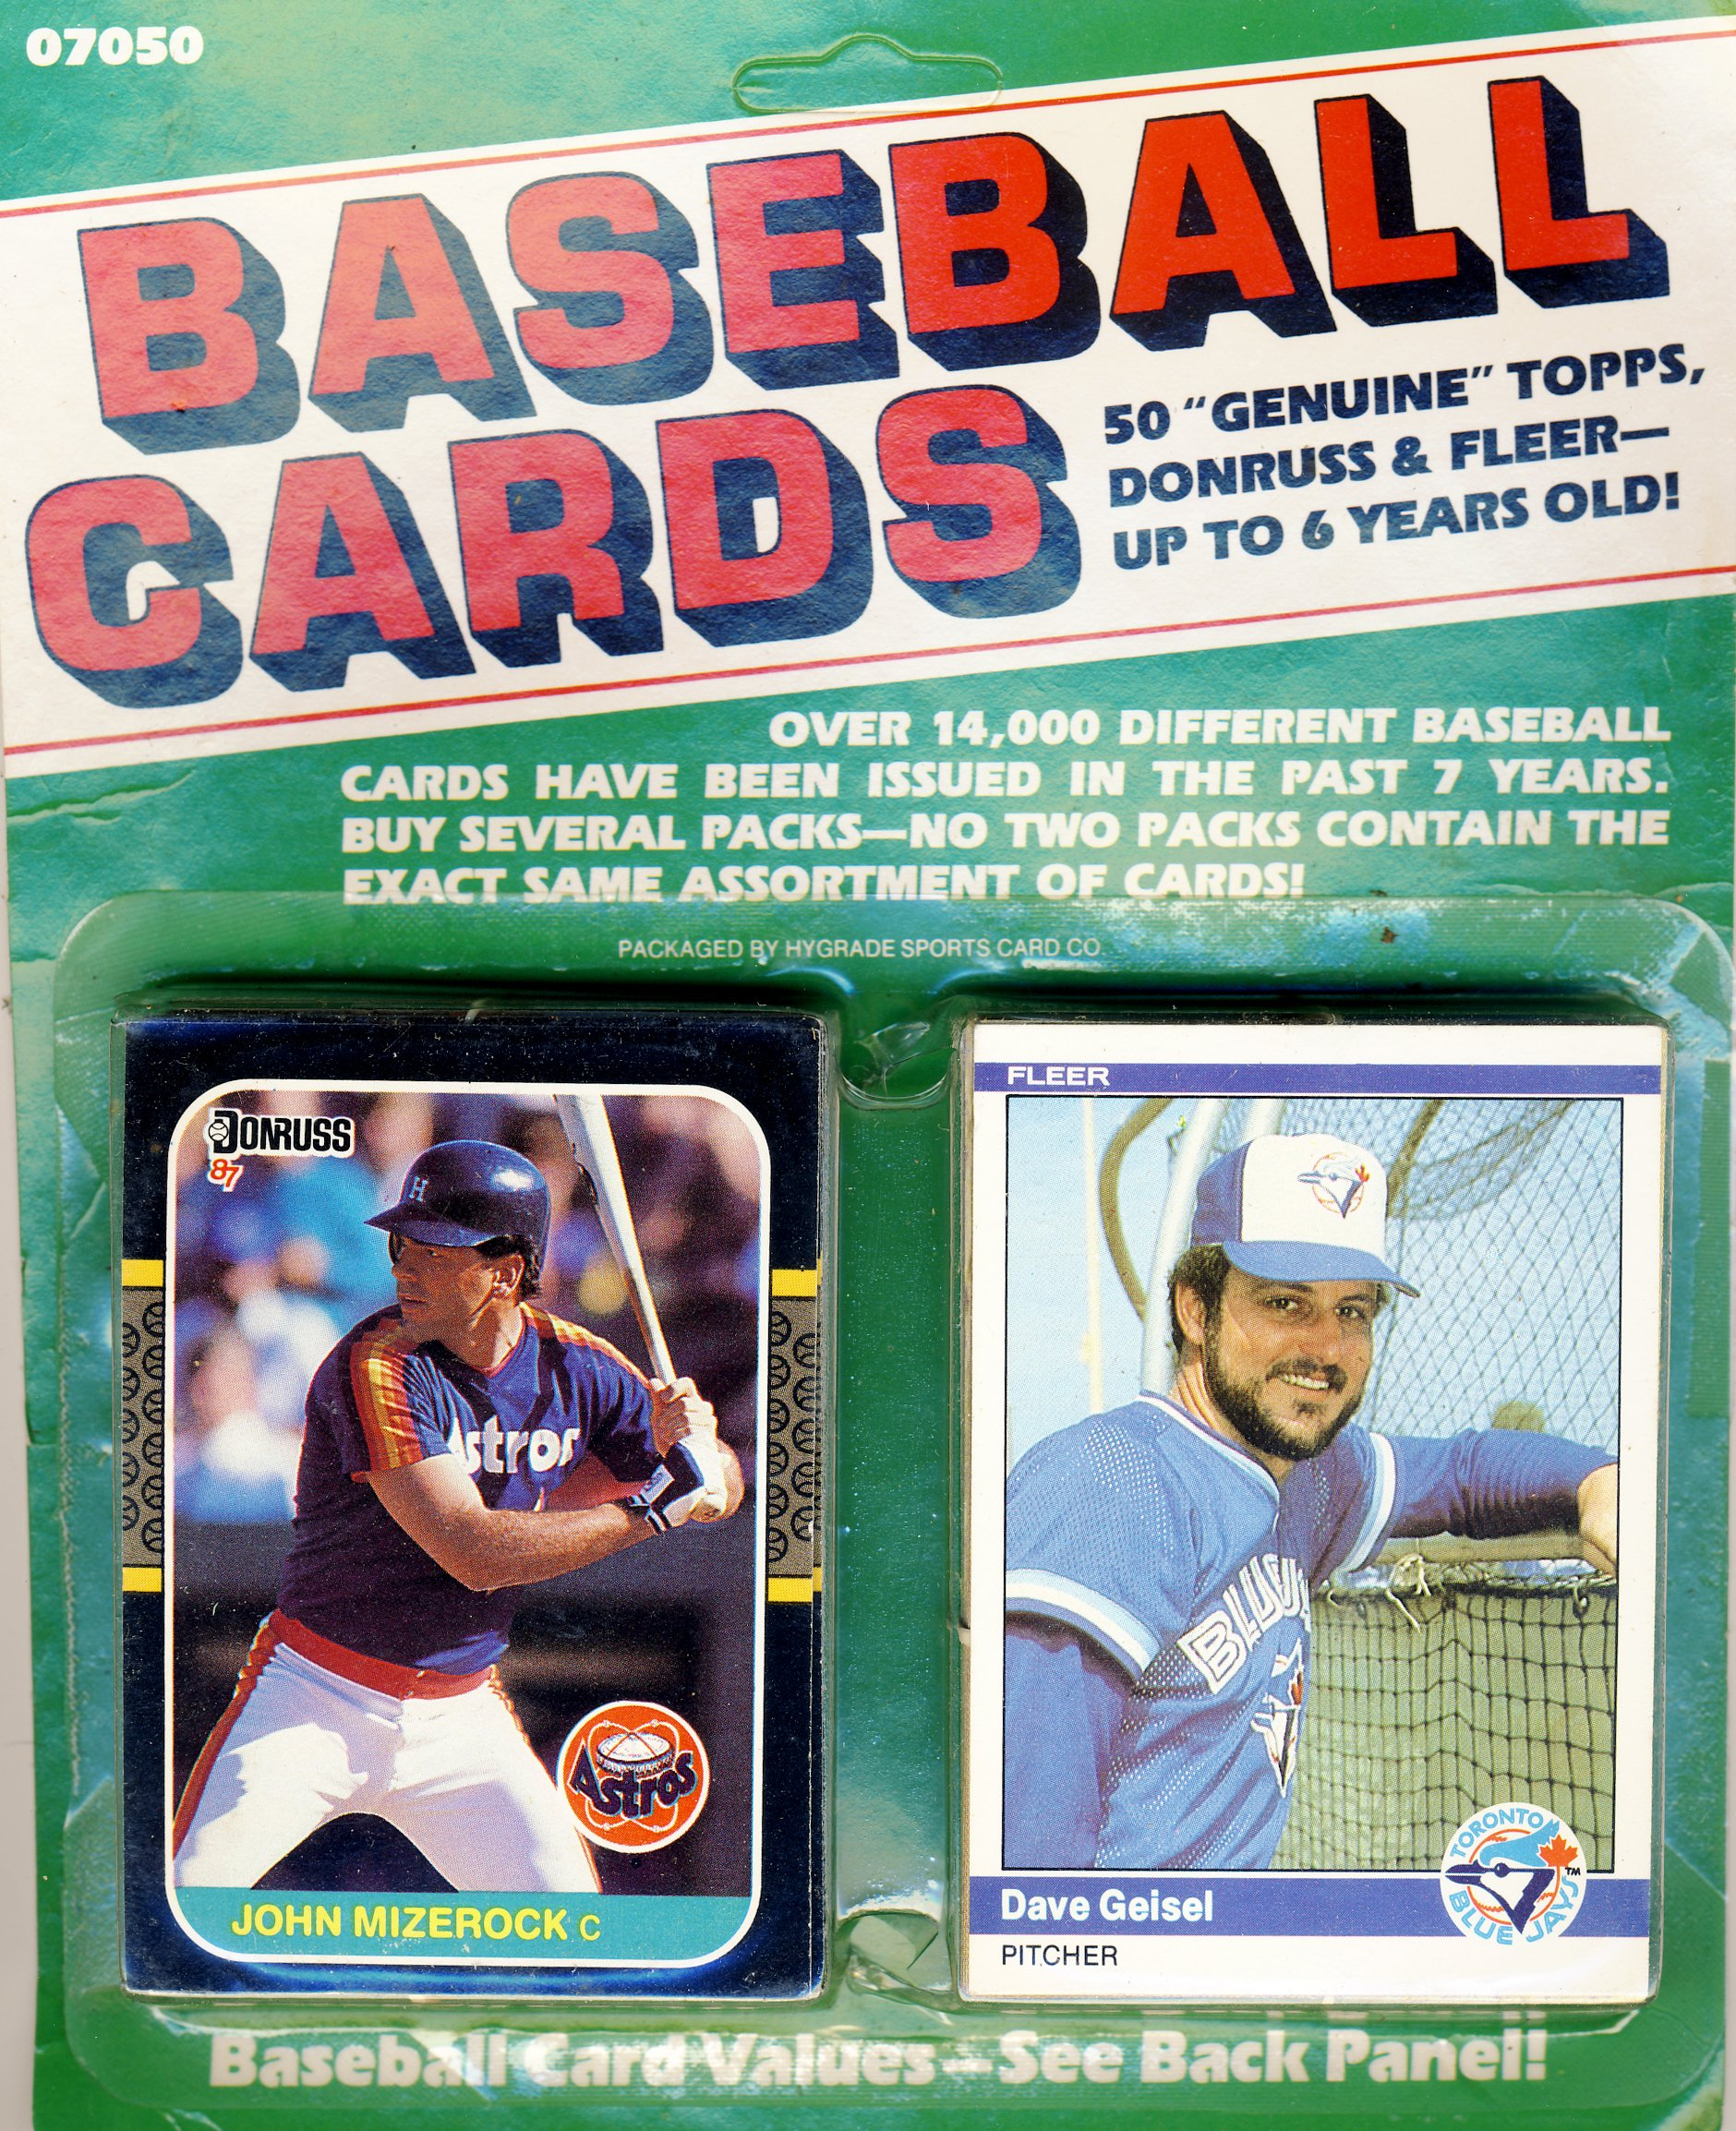 Baseball Cards 50 Genuine Topps Donrus And Fleer Up To 6 Years Old